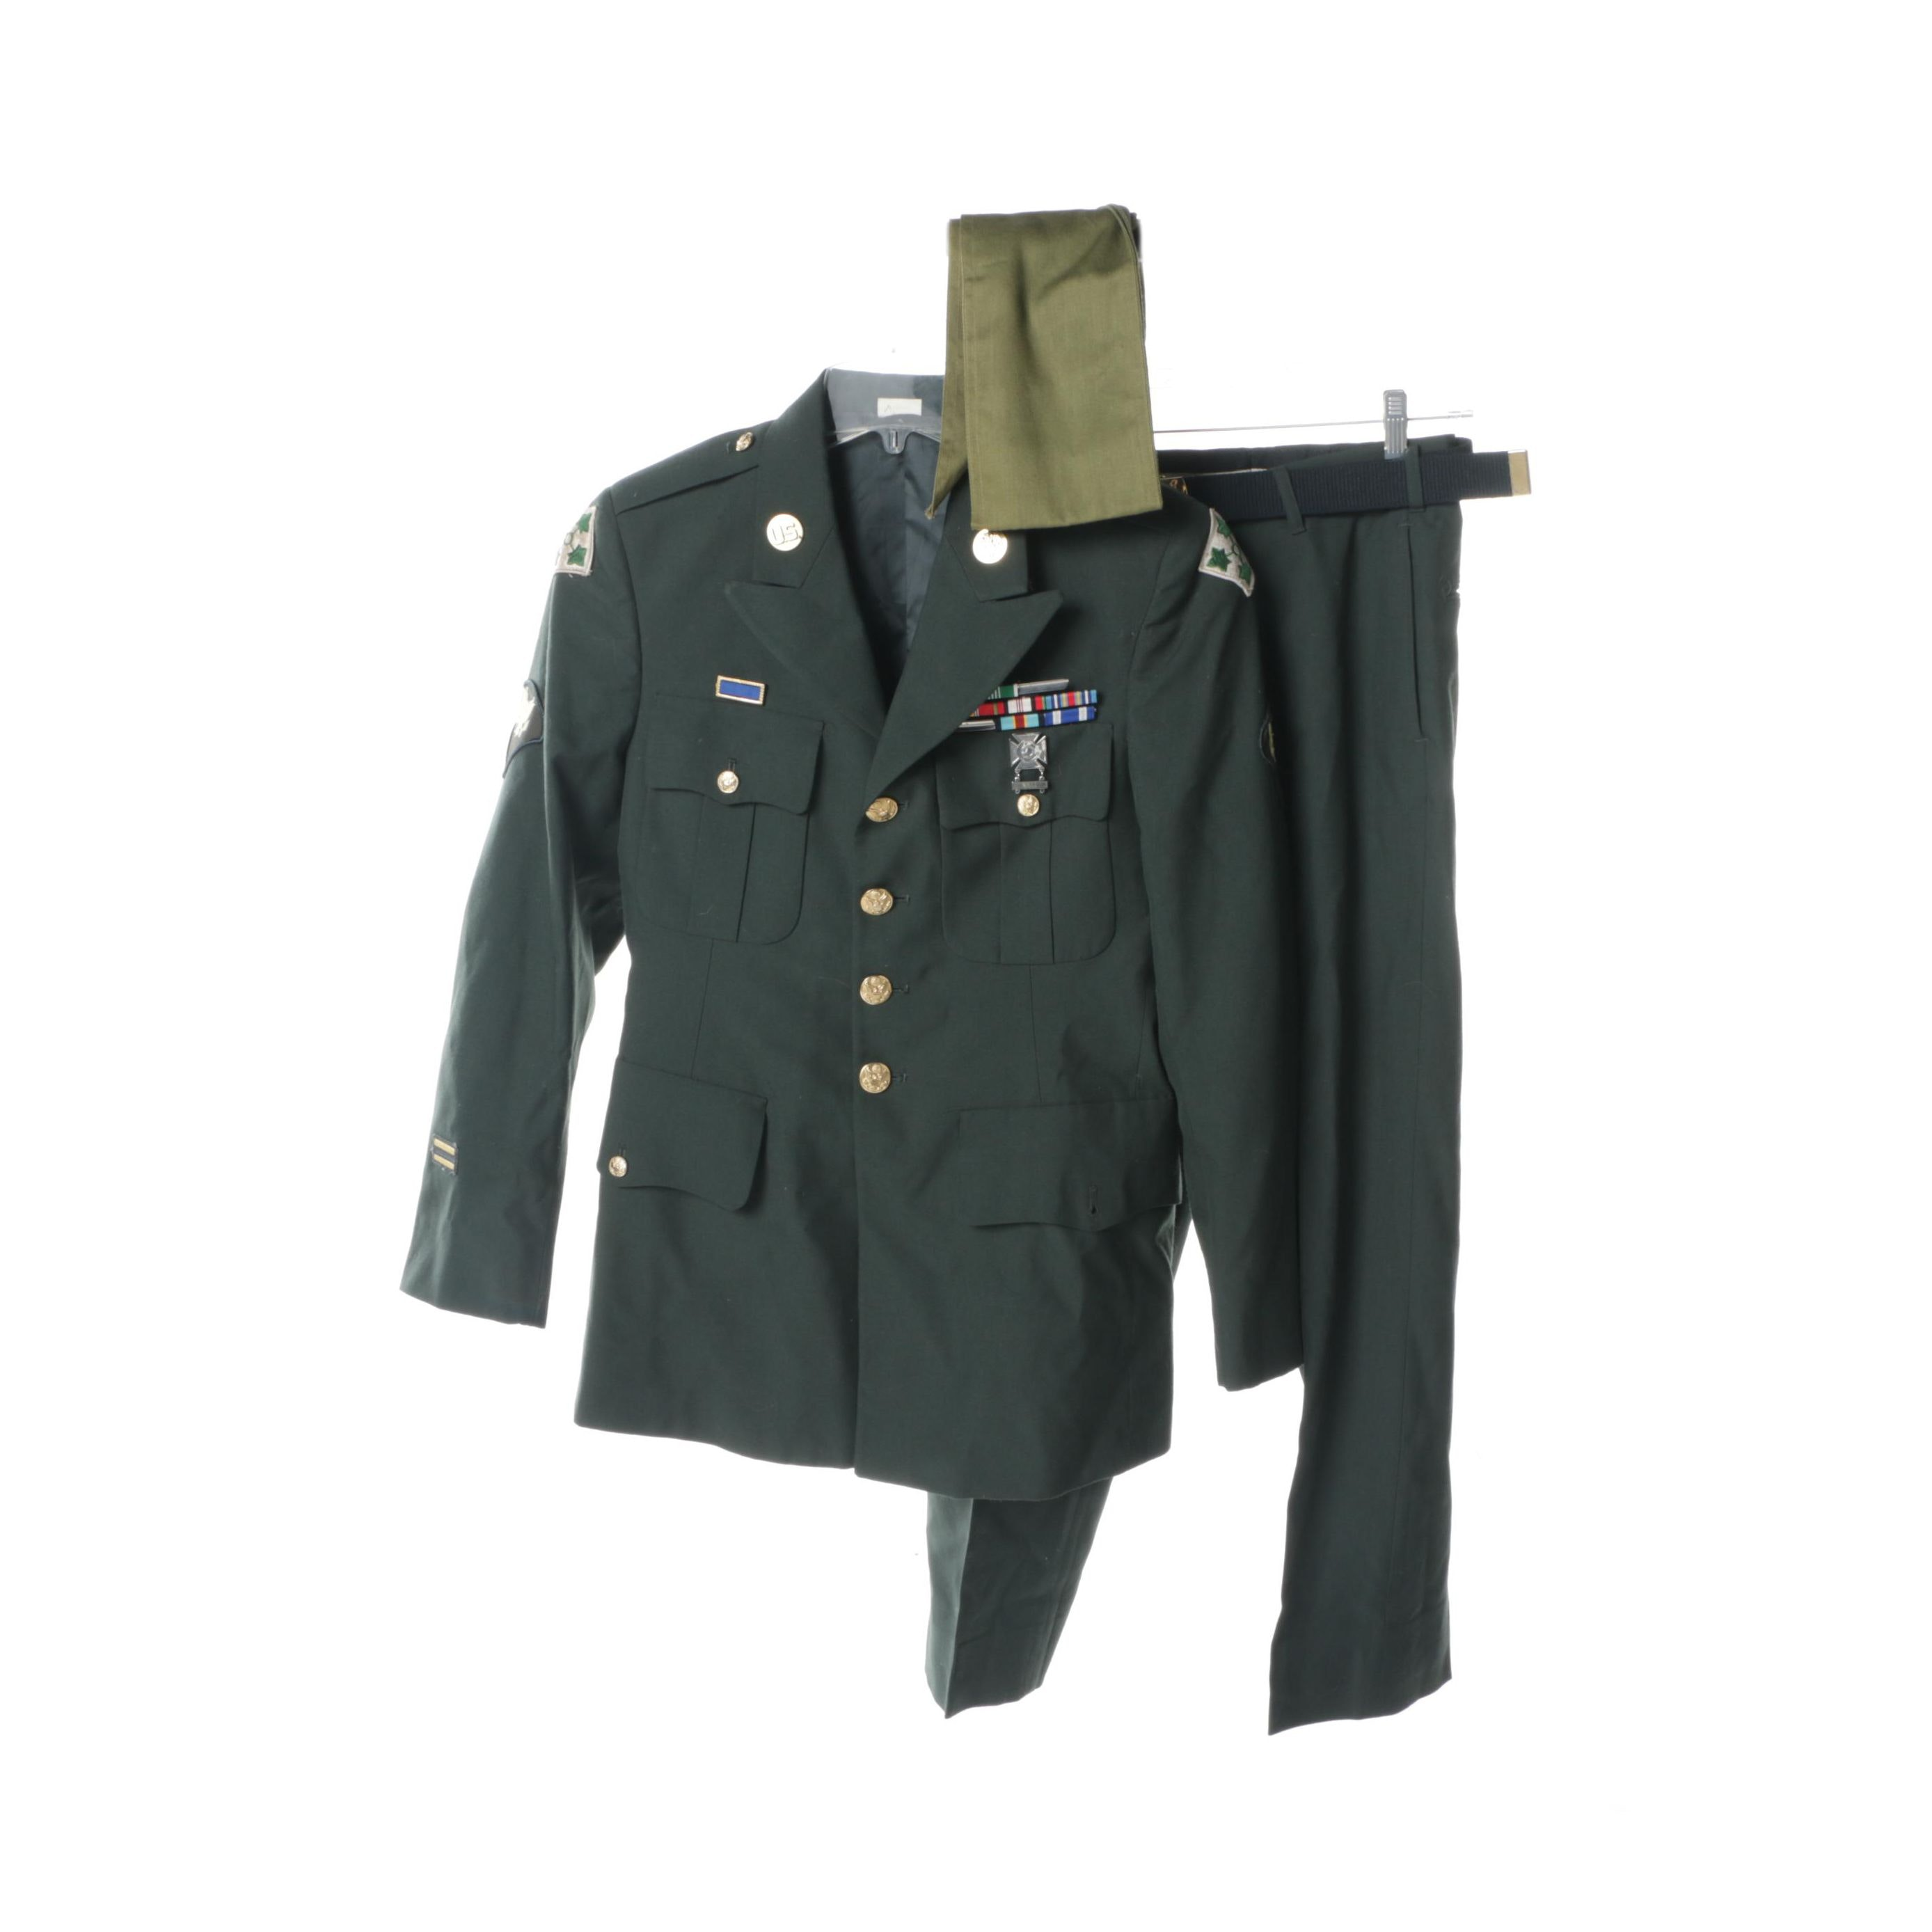 U.S. Army Green Dress Uniform with Sash